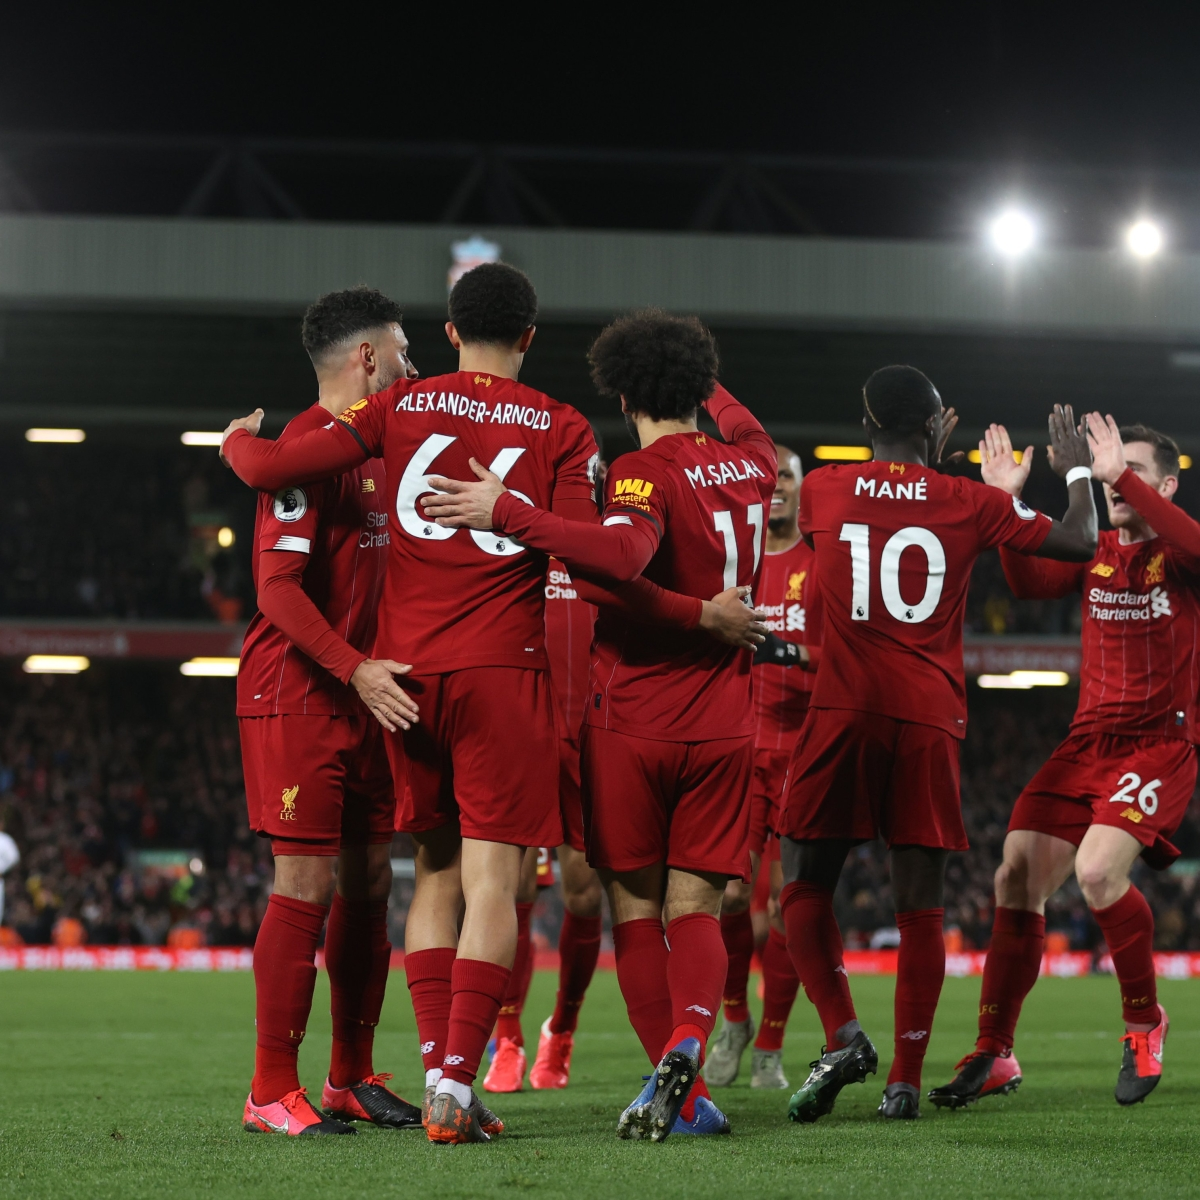 'A dozen points from paradise': Twitter celebrates as Liverpool close in on title win after 29 years